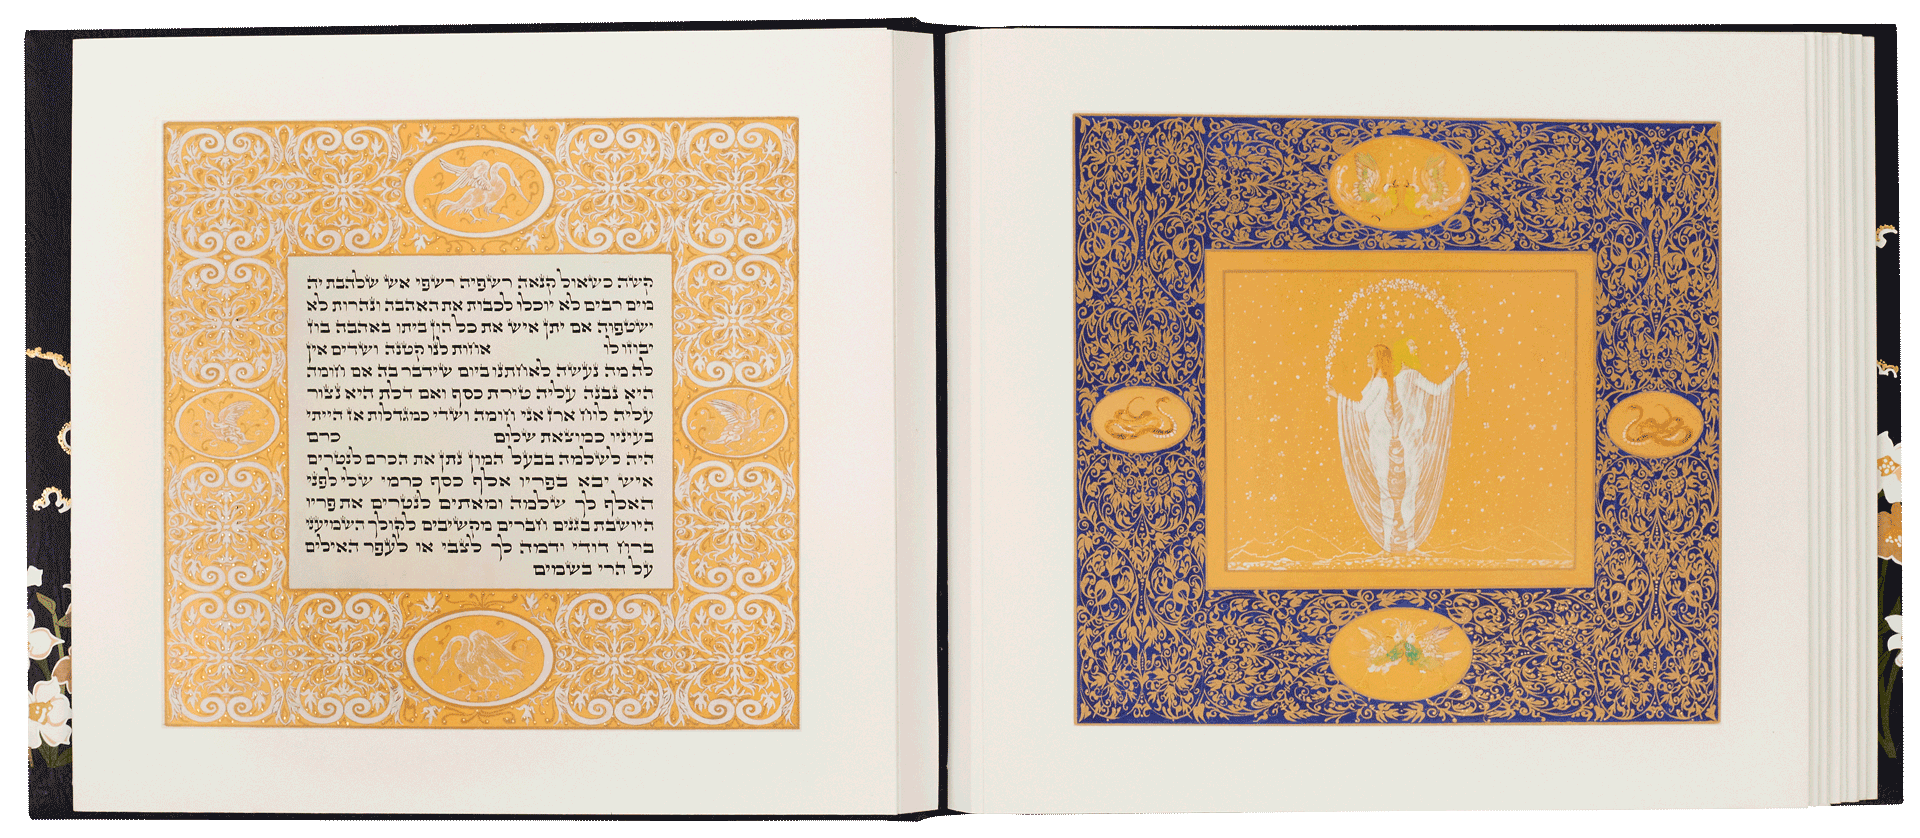 """The Song of Songs' closing spread beautifully decorated in yellow, blue and gold. <small><a href=""""https://www.facsimile-editions.com/copyright/"""">Facsimile image © Copyright 2021 Facsimile Editions Ltd</a></small>"""